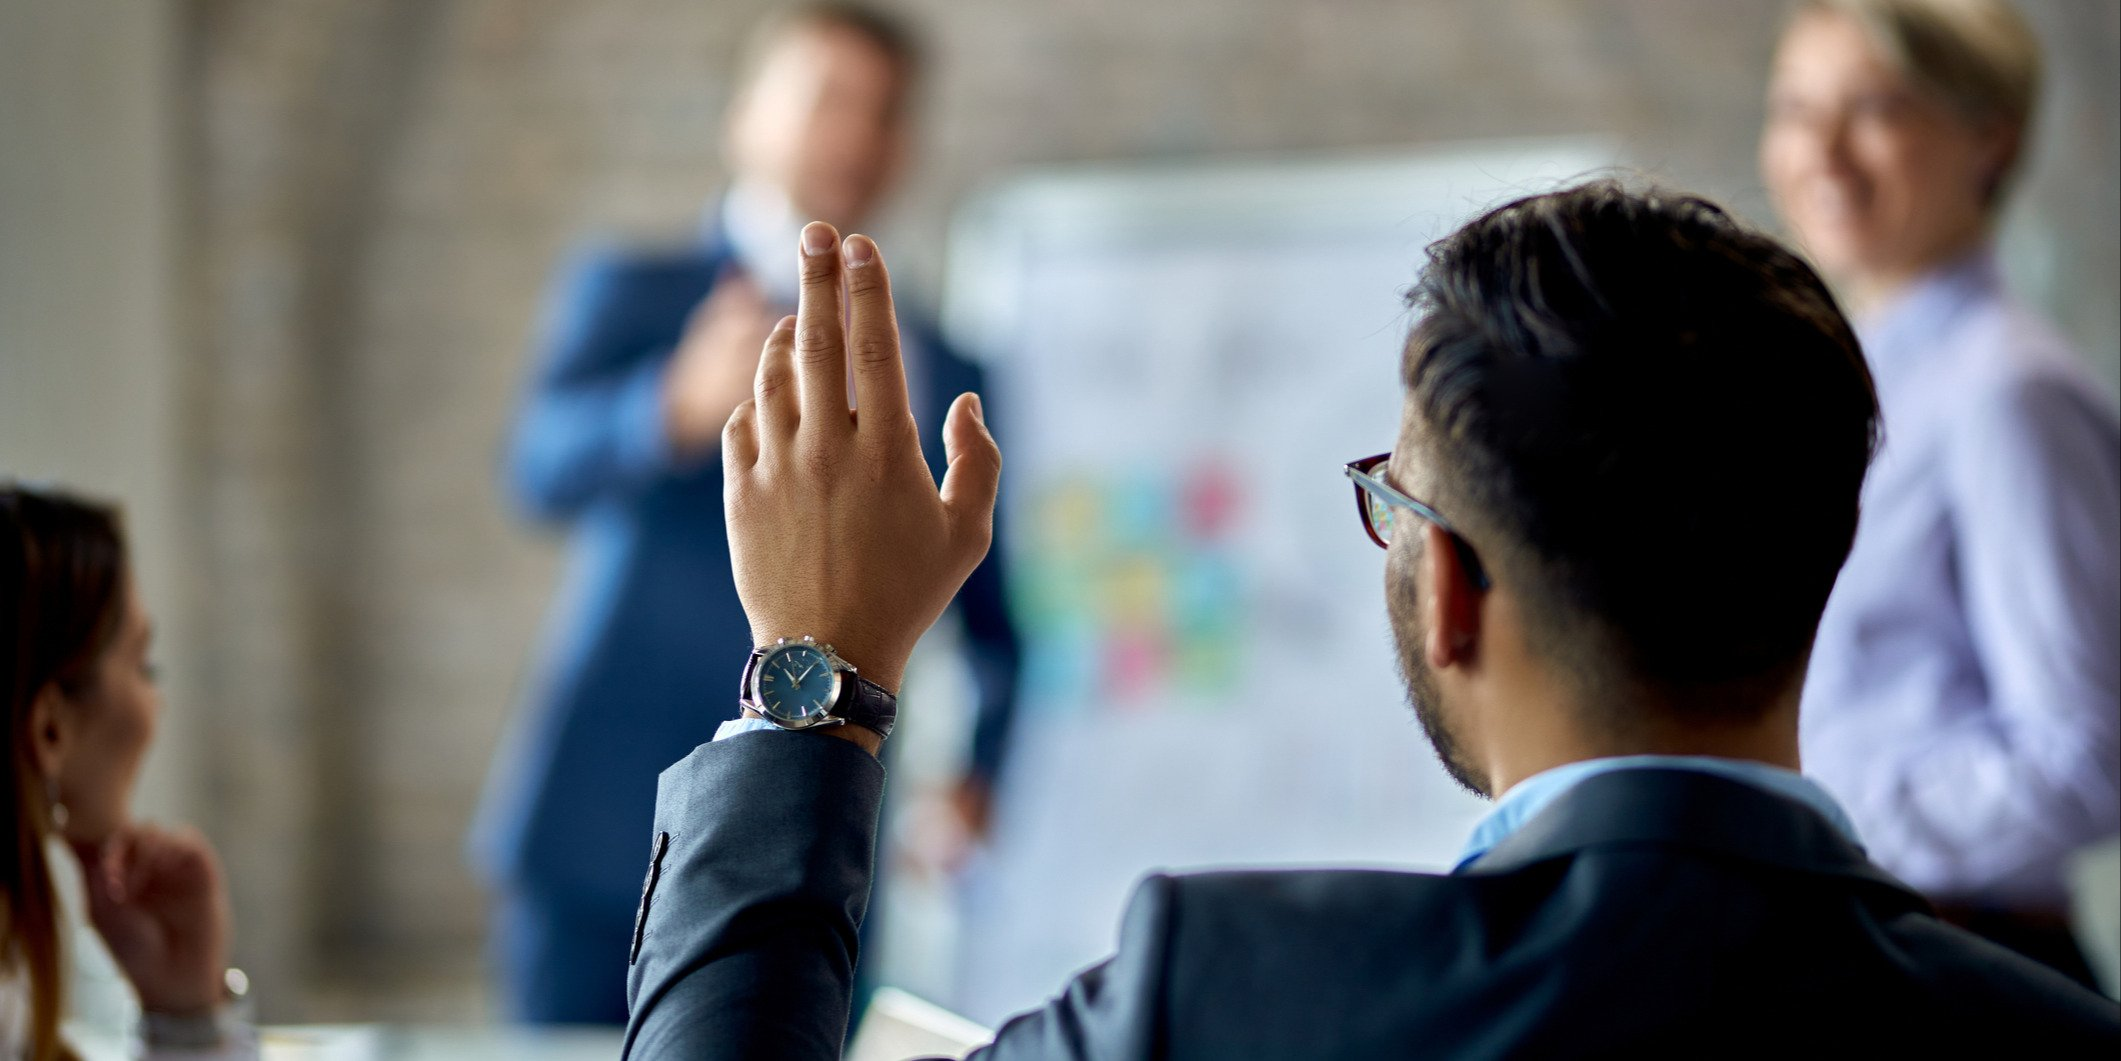 How to Make Your Townhall Meetings More Engaging